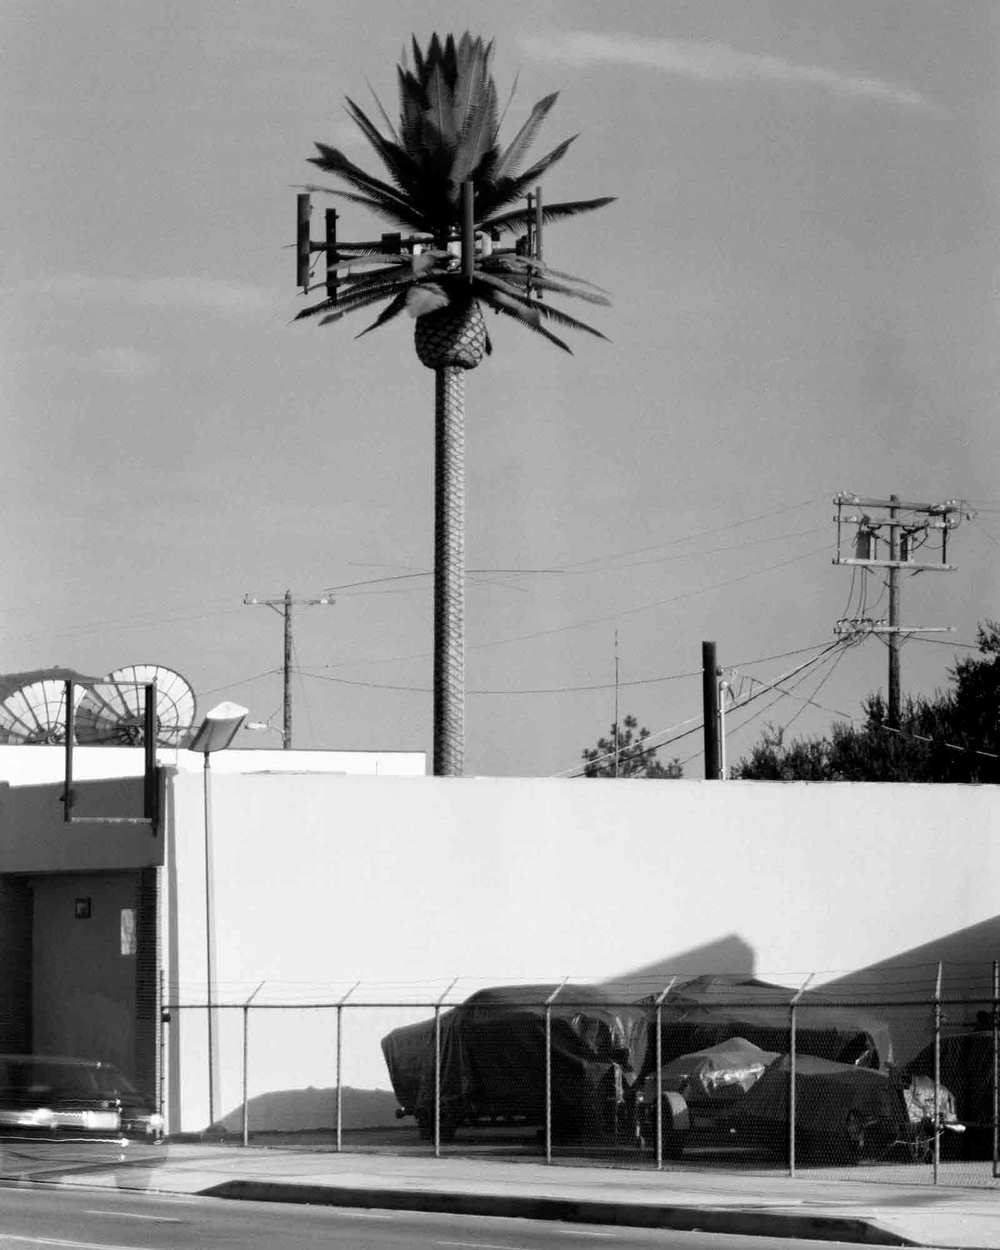 08-Microwave-Tower-#5,-North-Hollywood,-2003.jpg